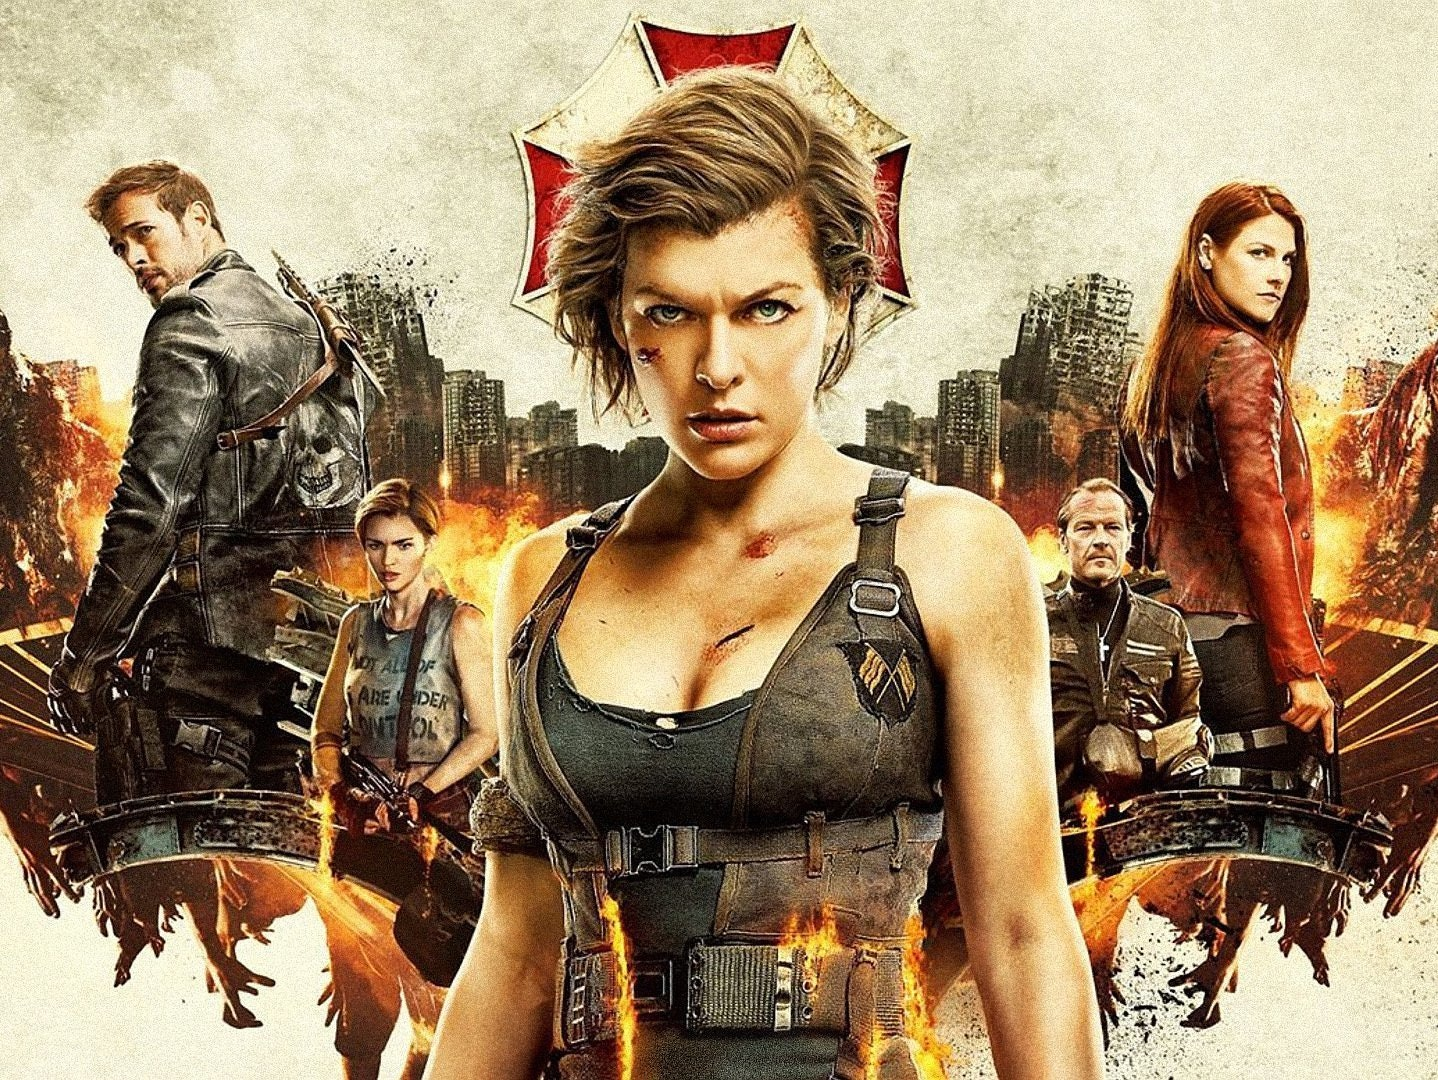 7 Easter Eggs in 'Resident Evil: The Final Chapter'